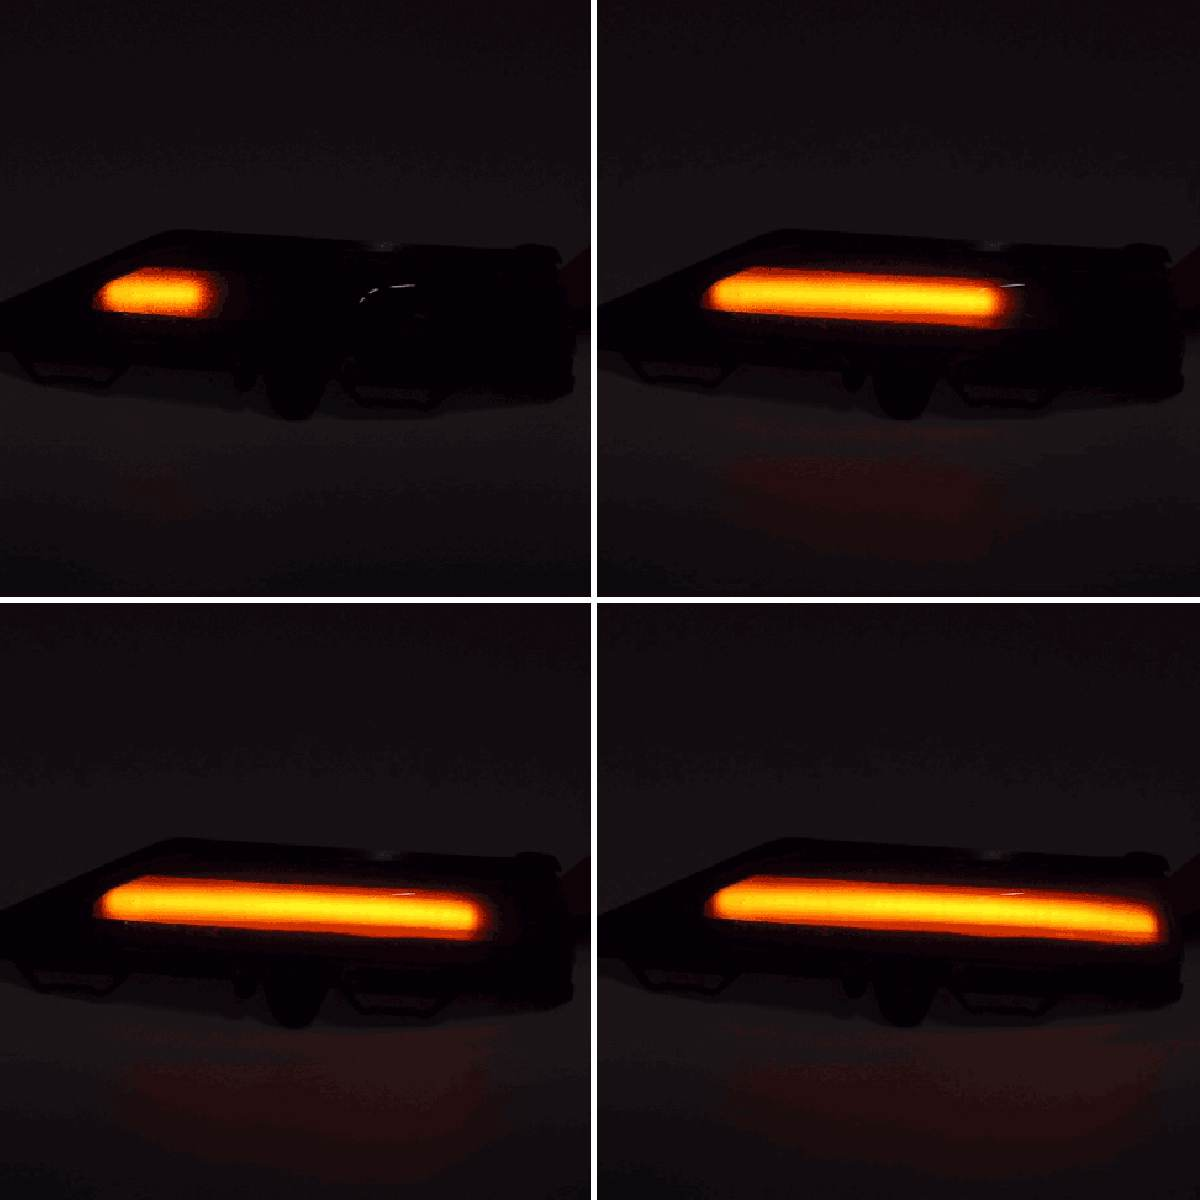 Ford Fiesta MK8 dynamic indicators